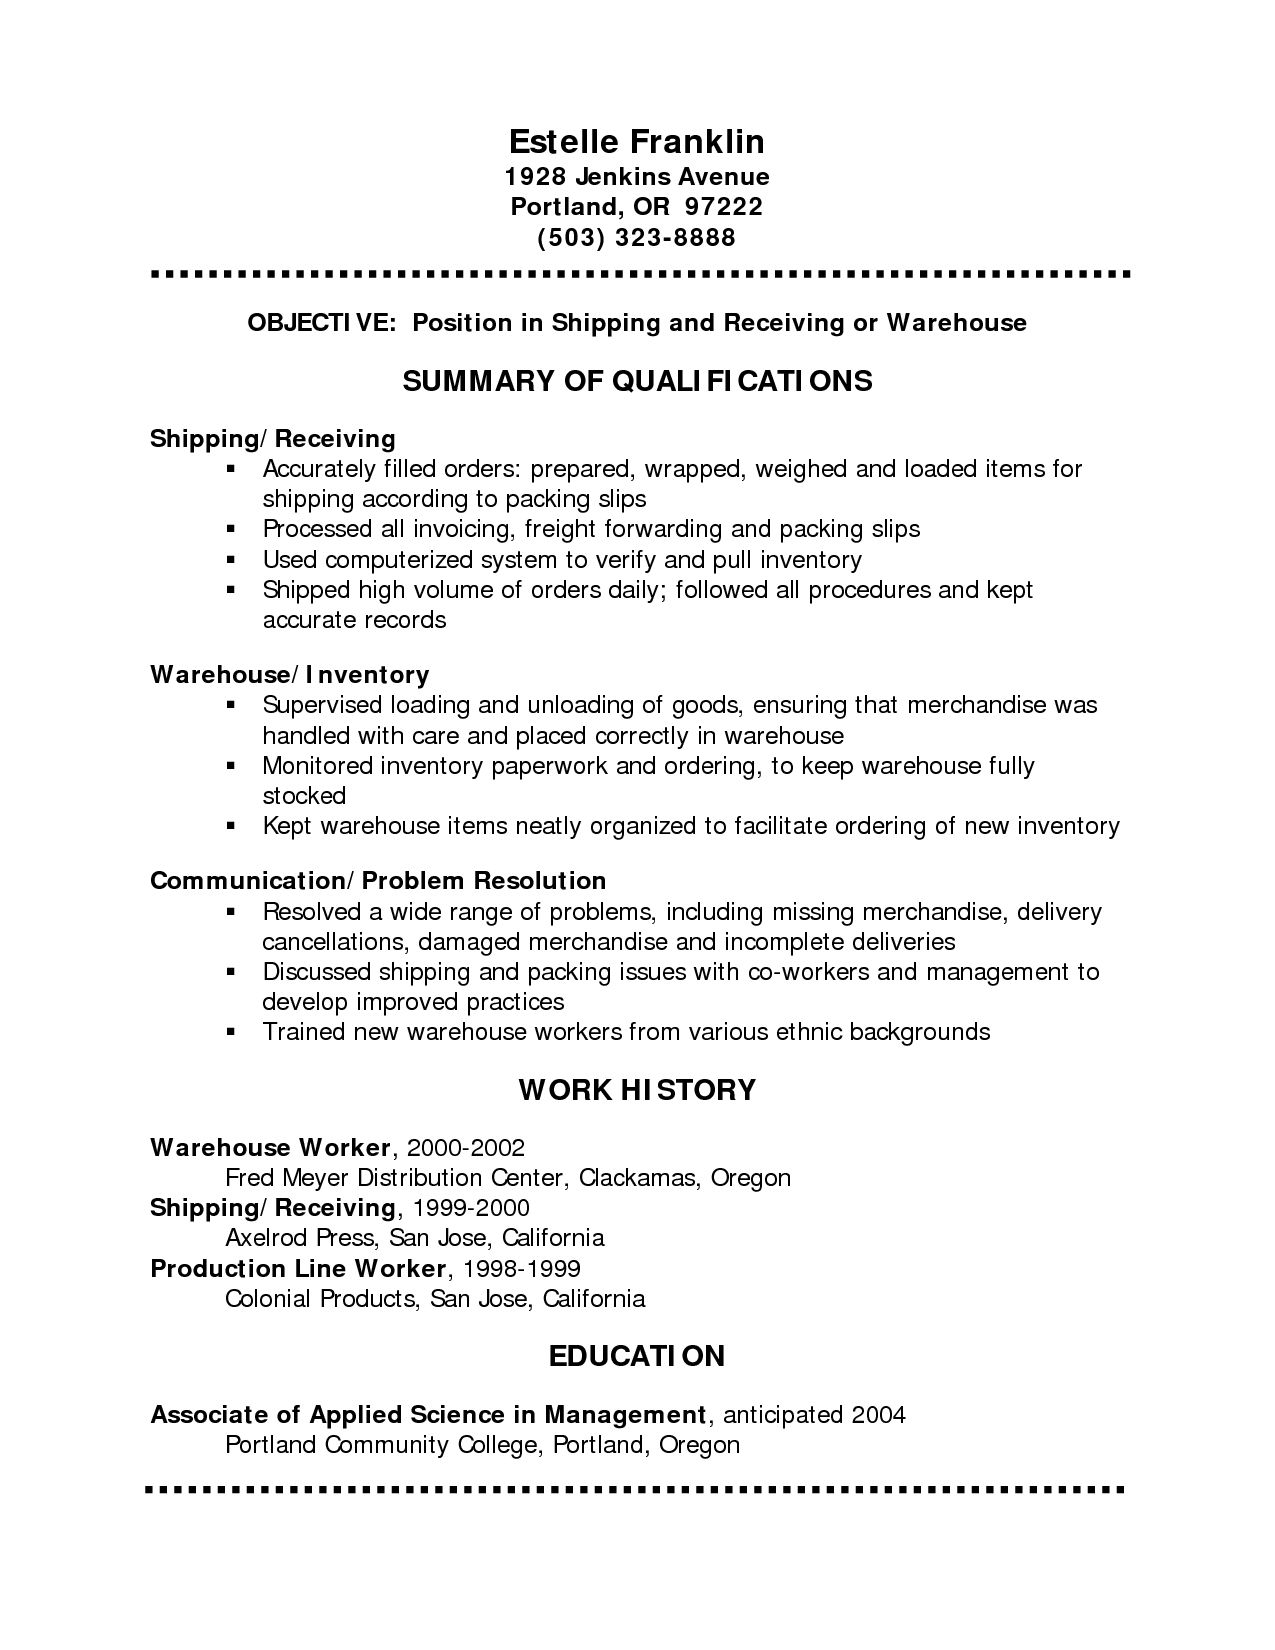 Resume Reference Examples Your Guide The Best Free Resume Templates Good Samples Examples